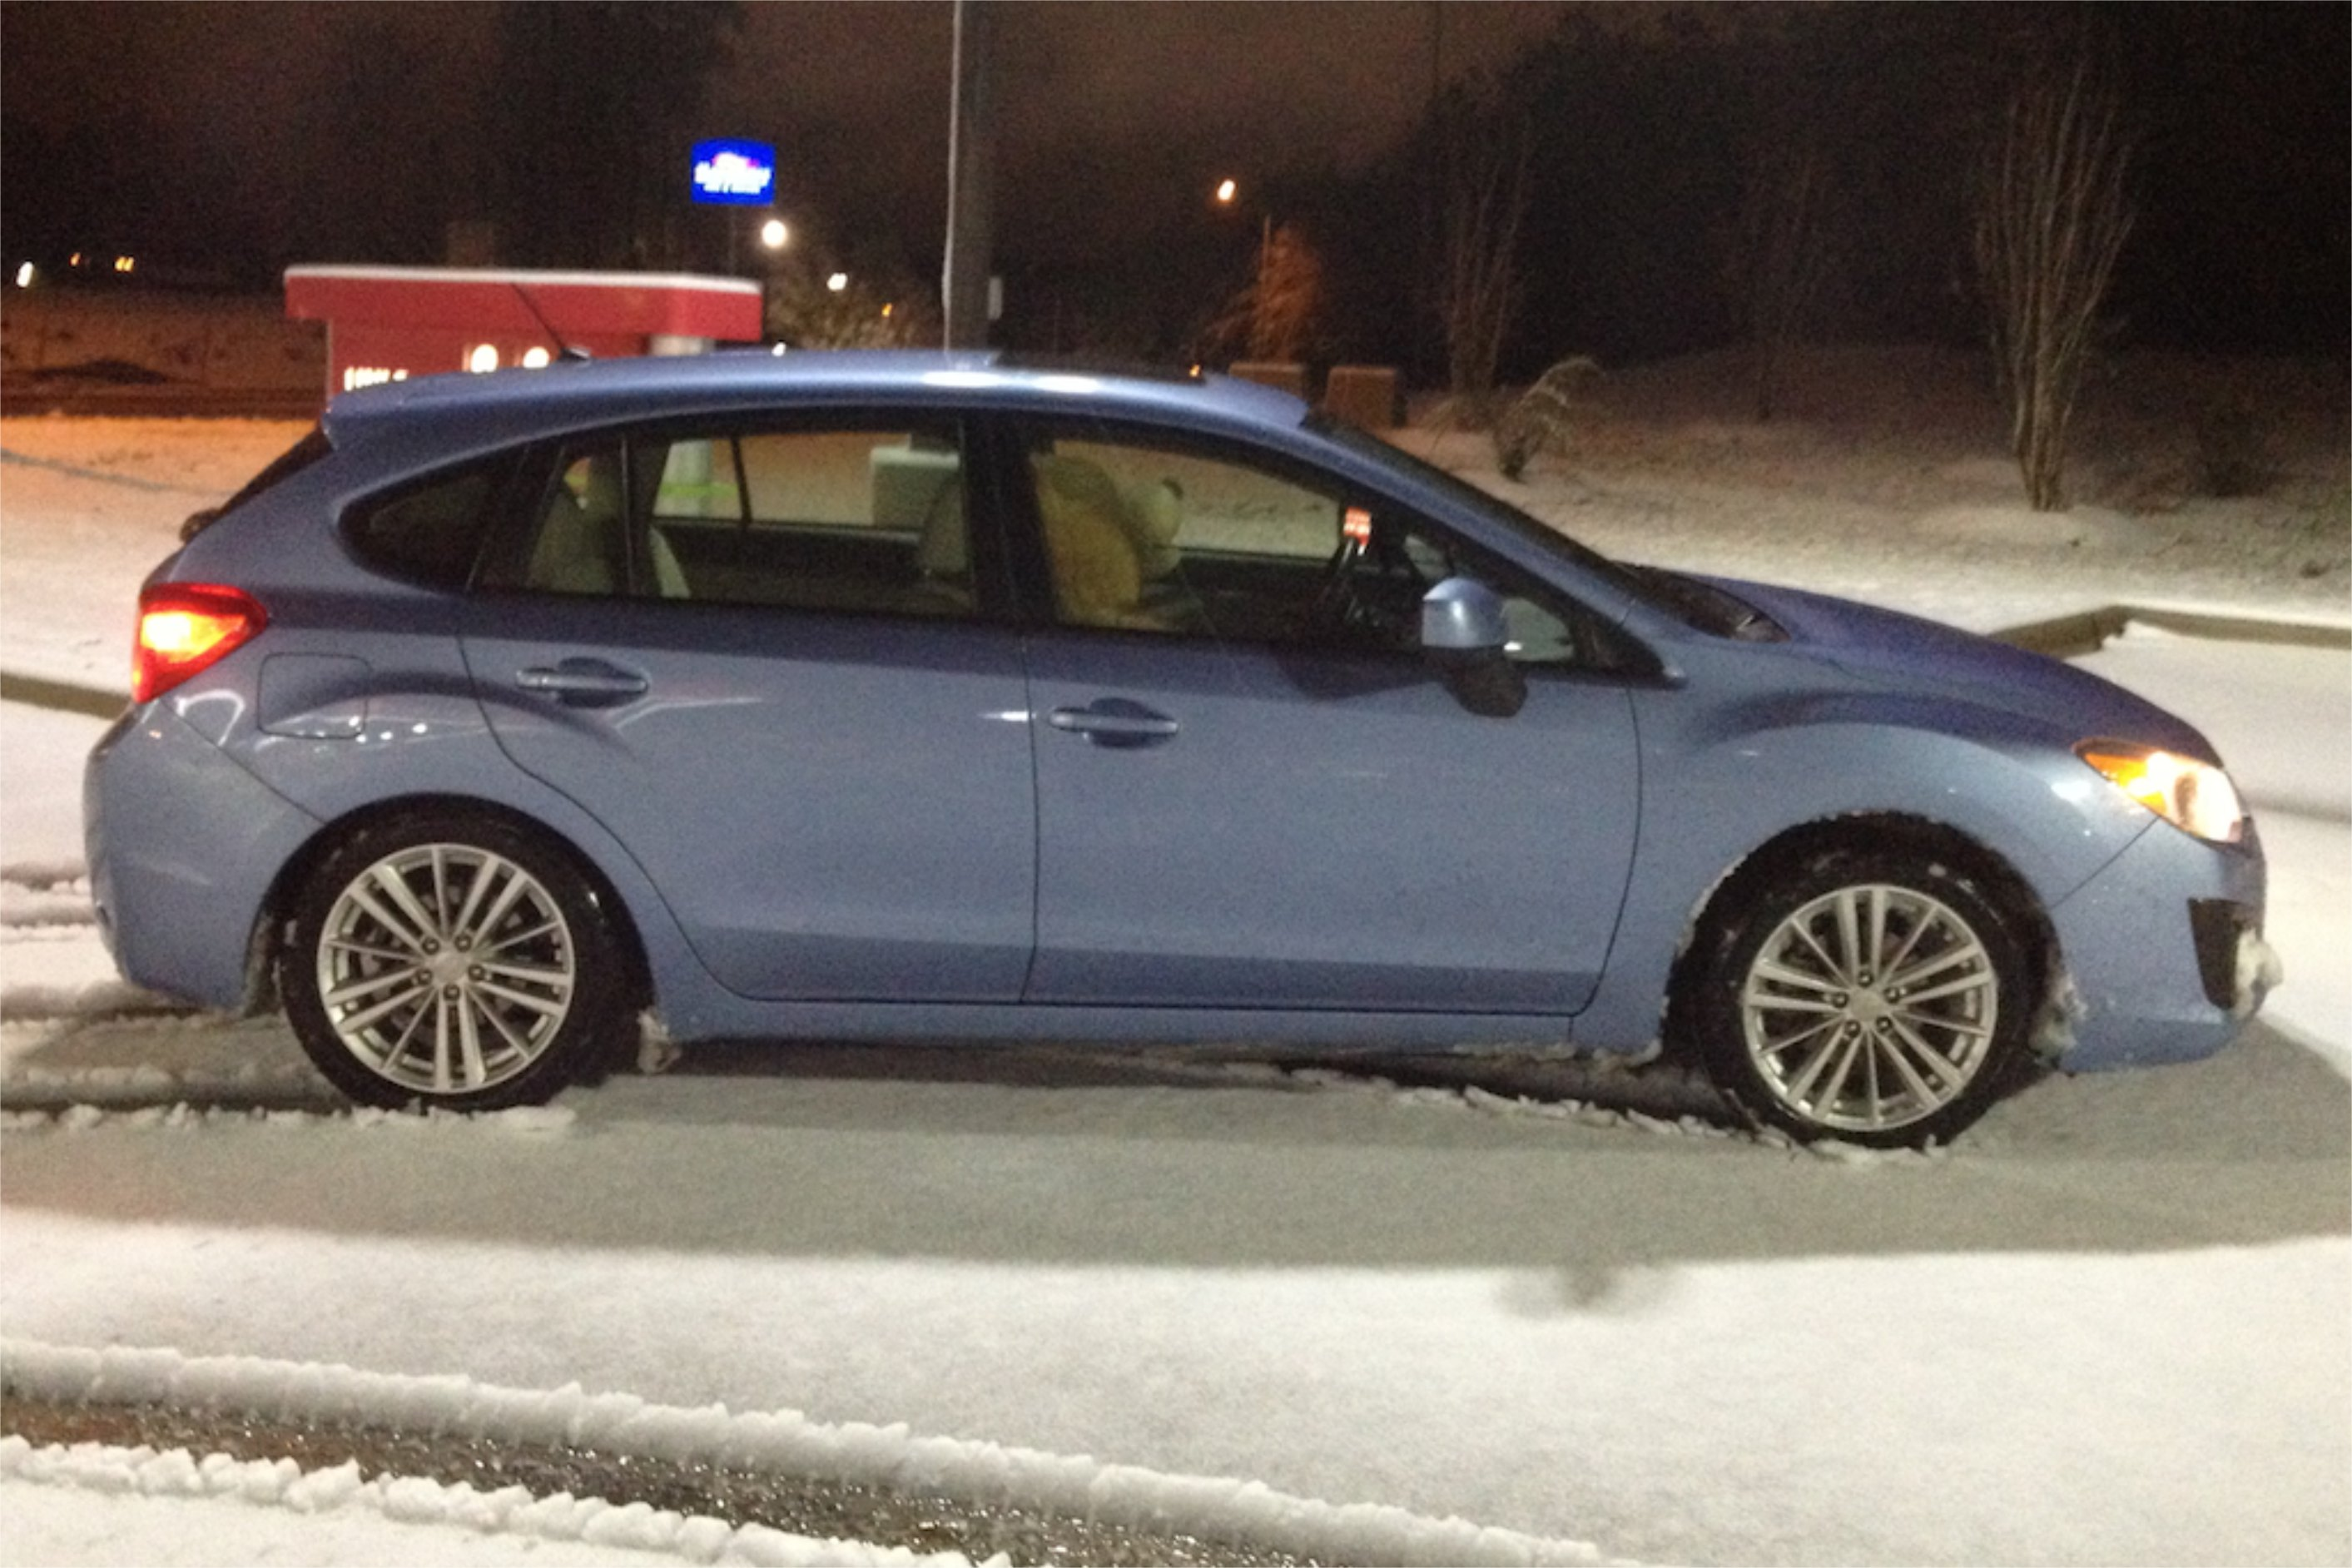 2012 Subaru Impreza: Road Trip to Philly